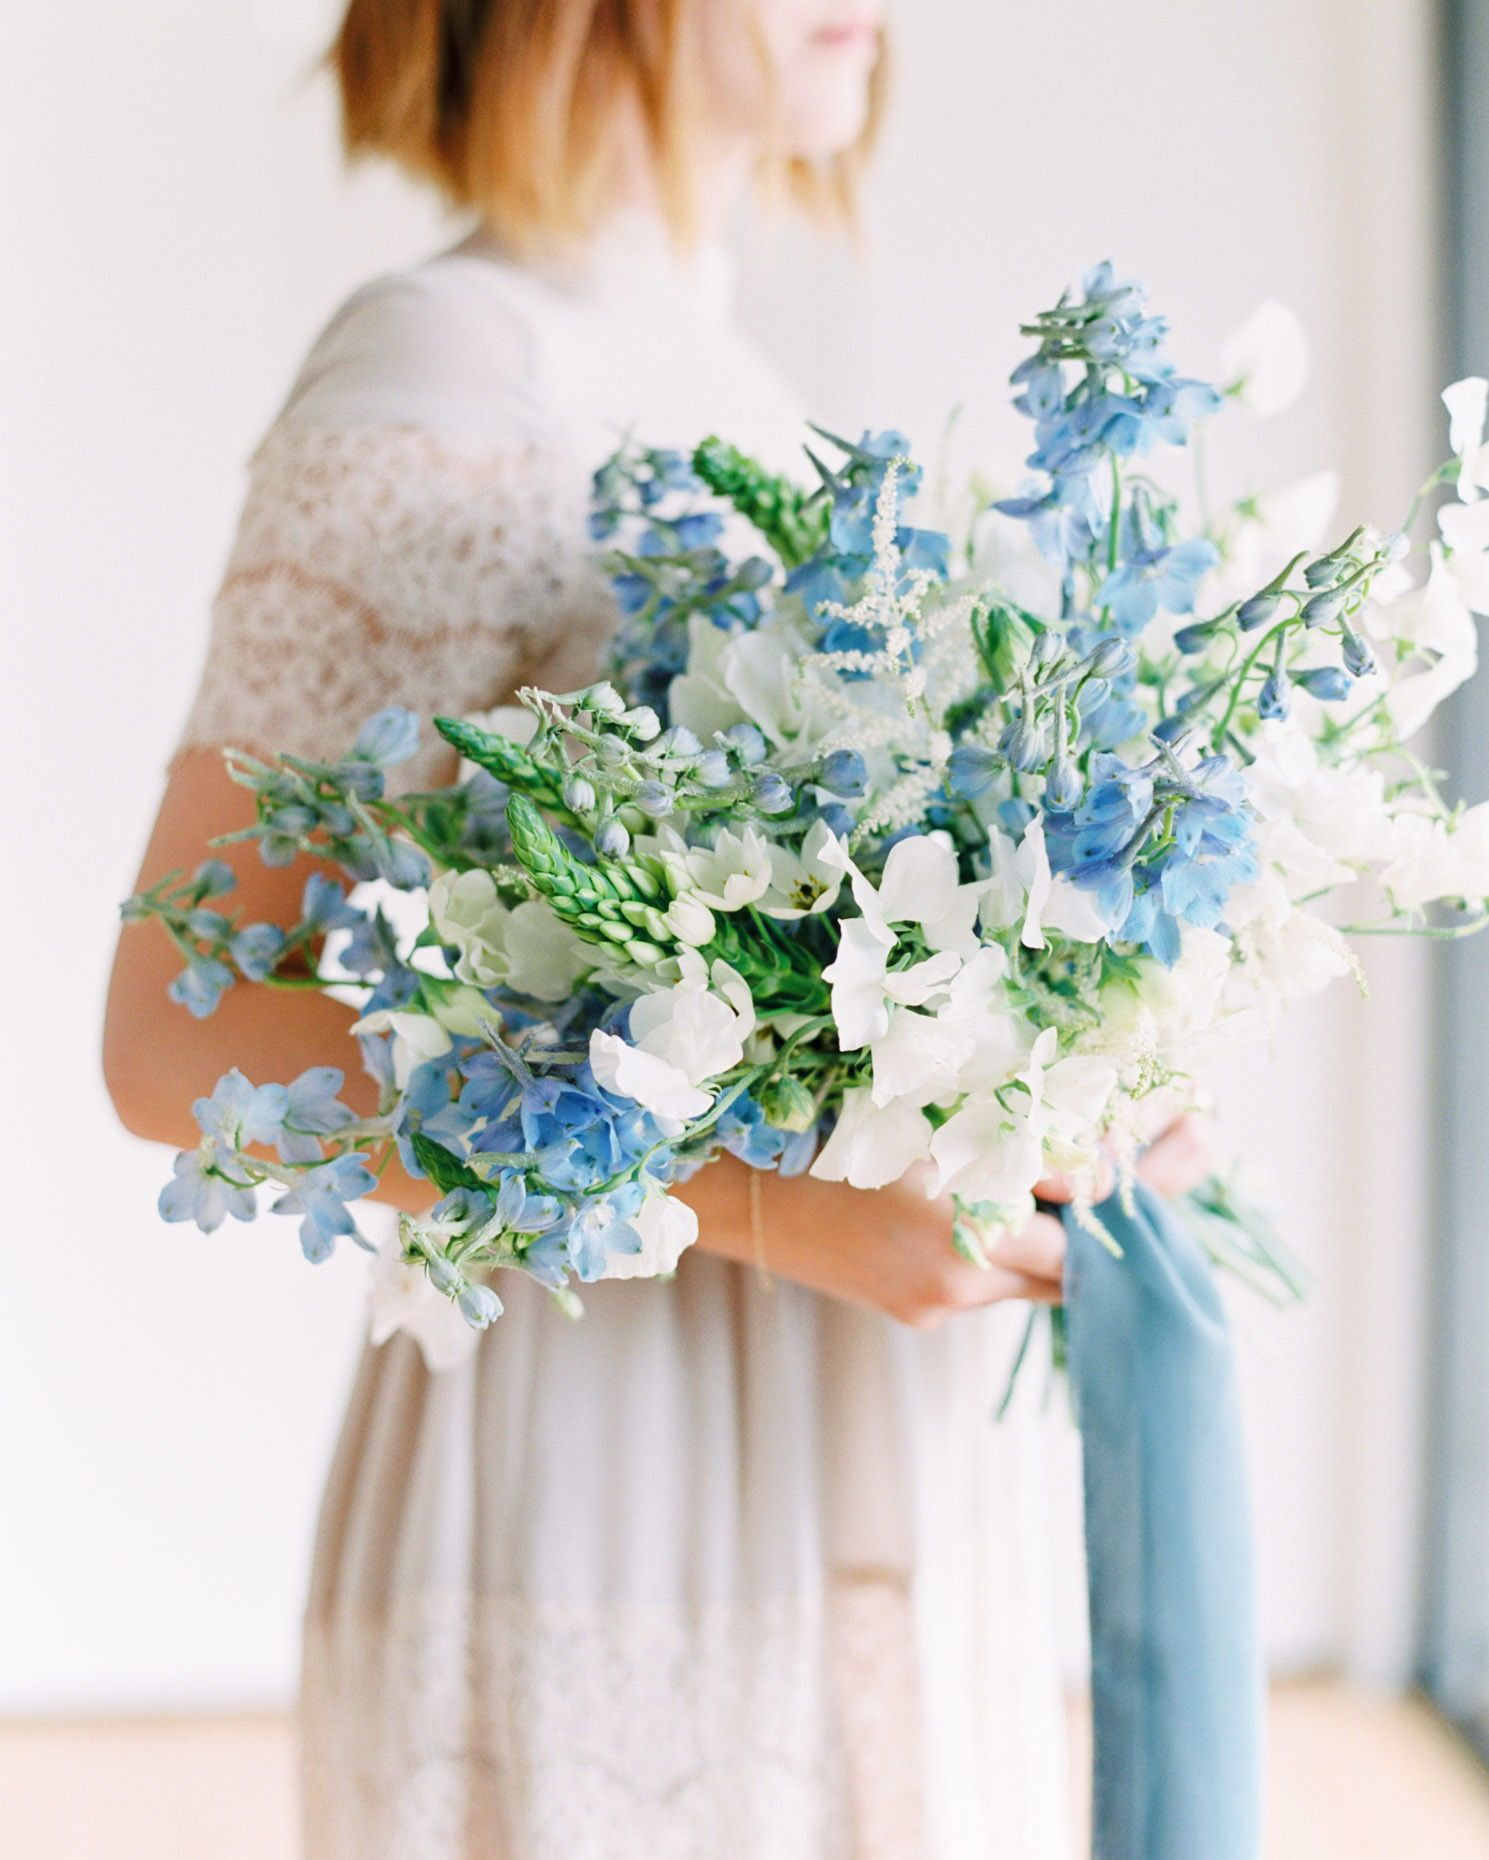 21 Ways To Use Delphinium In Your Wedding Bouquet Flower Bouquet Wedding Delphinium Wedding Bouquet Wedding Flower Guide